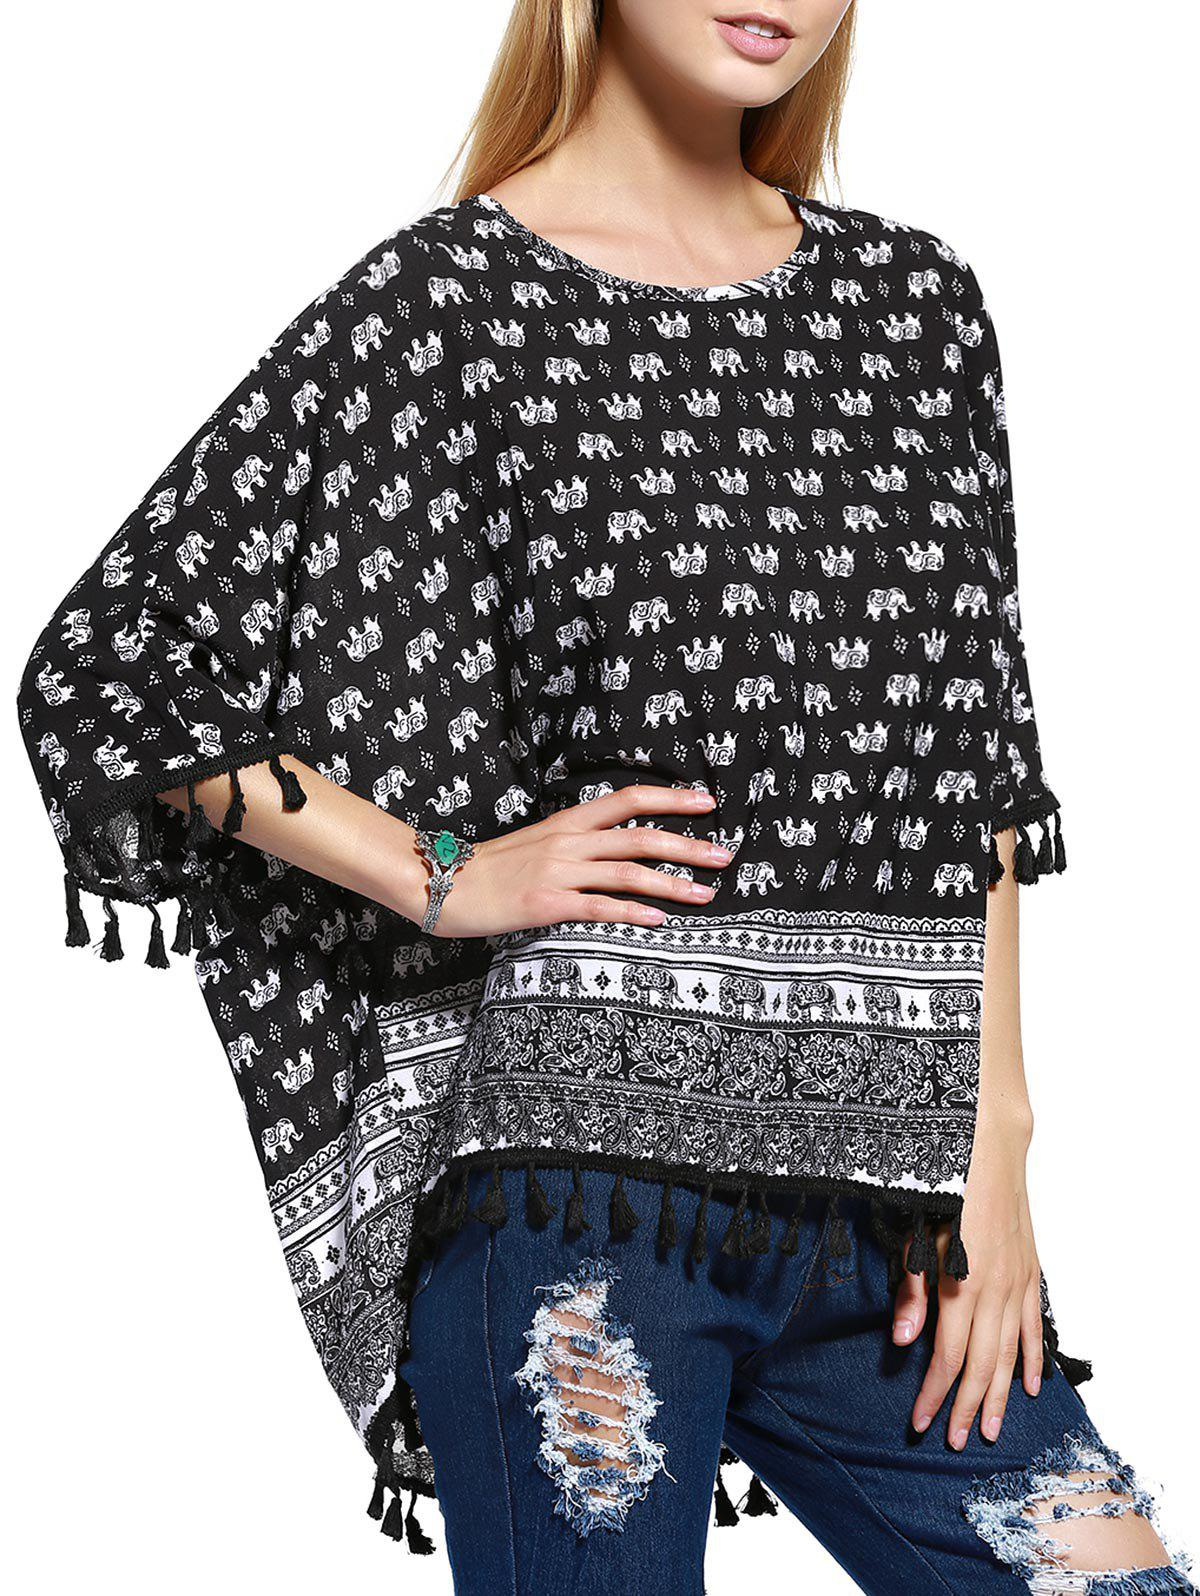 Stylish Tassel Trim Elephant Paisley Print Women's Blouse - BLACK ONE SIZE(FIT SIZE XS TO M)